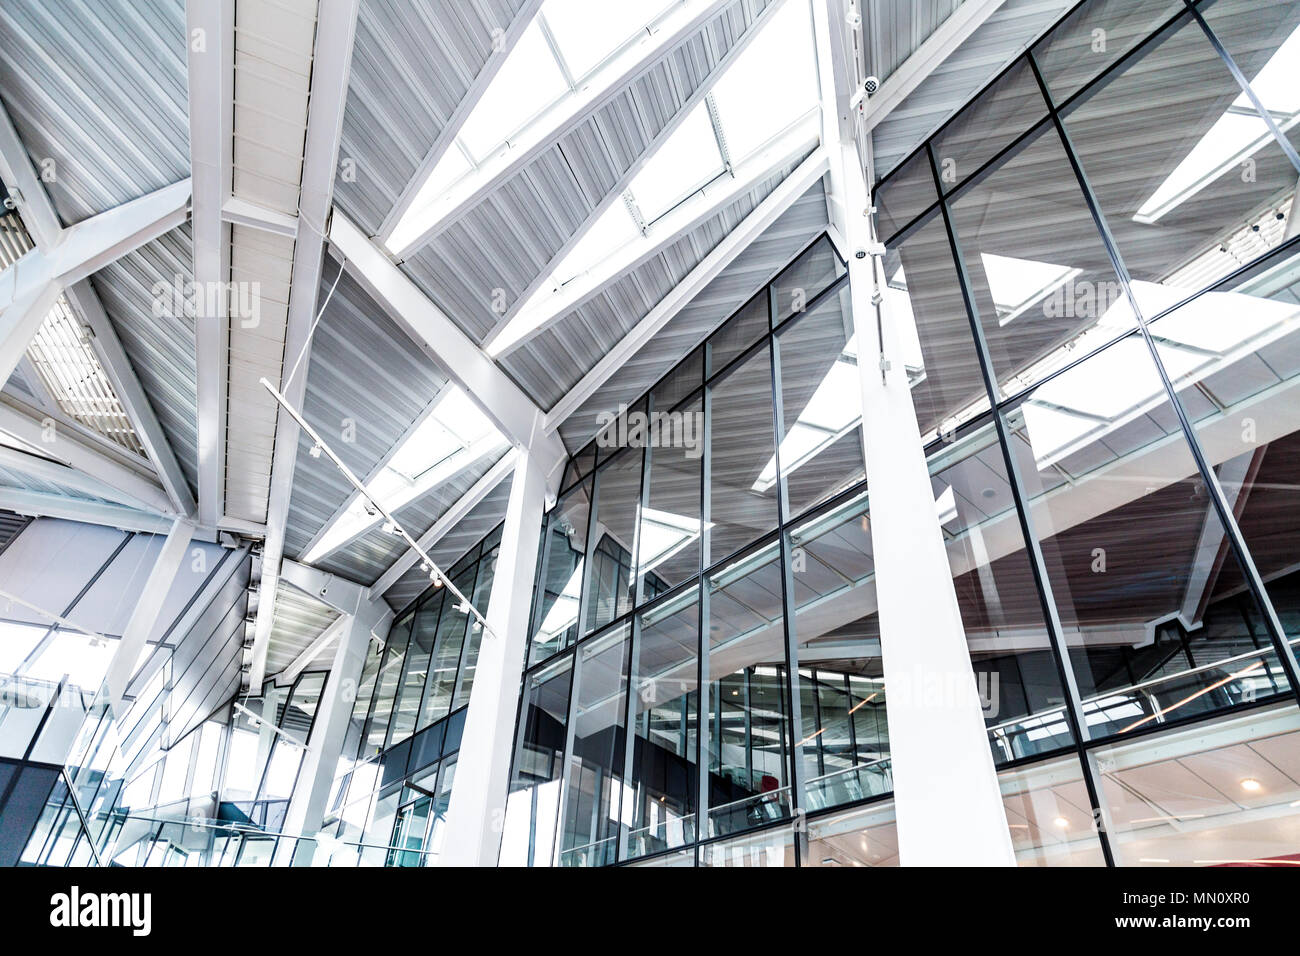 Interior of The Crystal Building - one of the most sustainable buildings in the world, London, UK - Stock Image